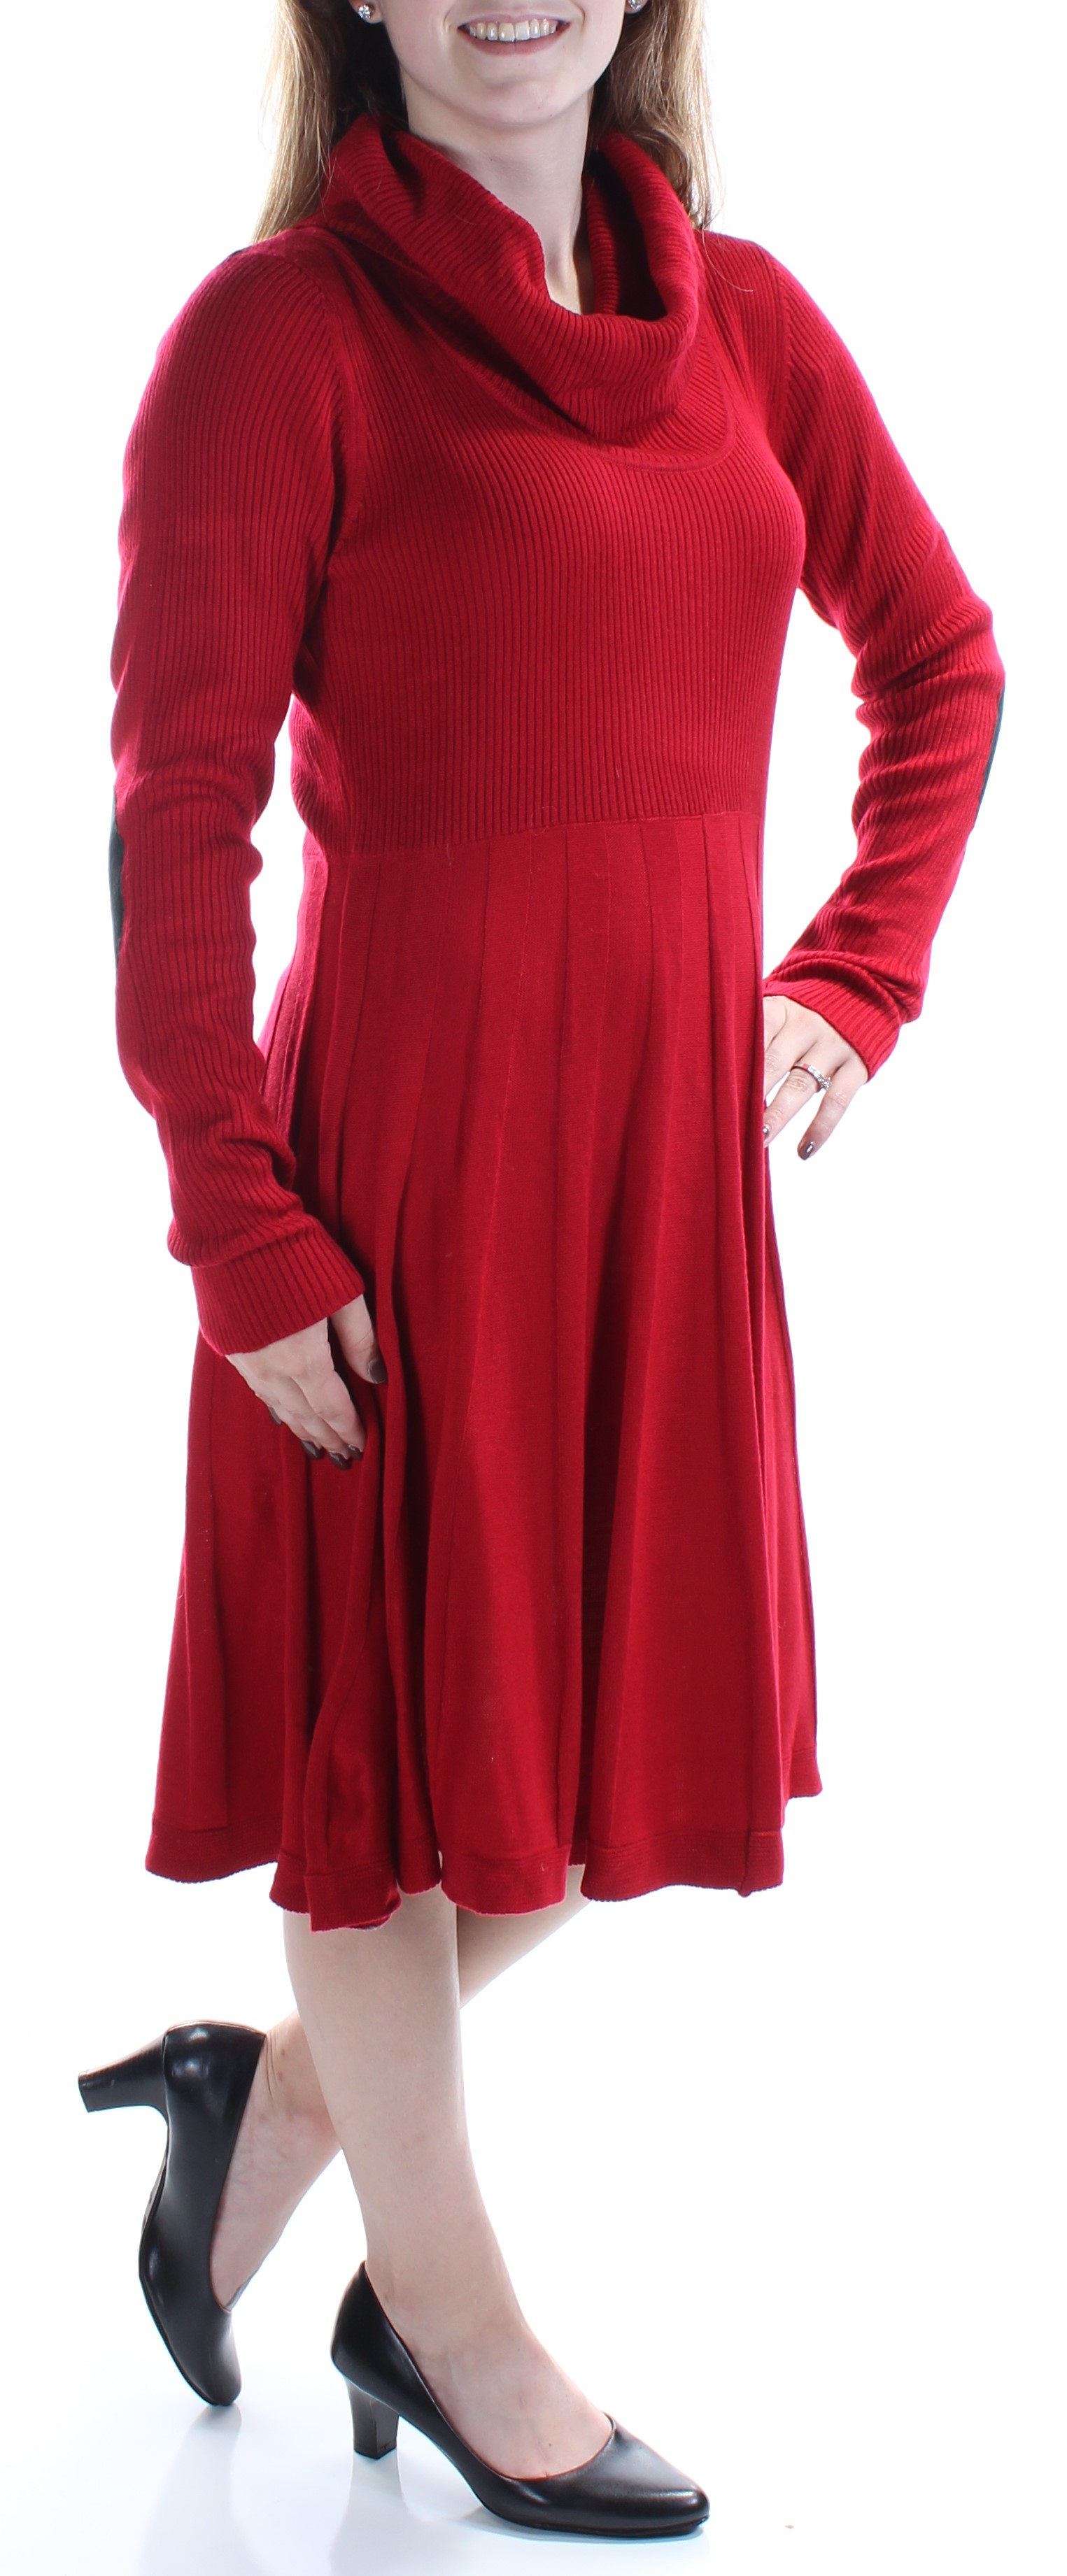 bac58a81 CALVIN KLEIN $134 Womens New 1036 Red Sweater Long Sleeve Dress M B+ ...